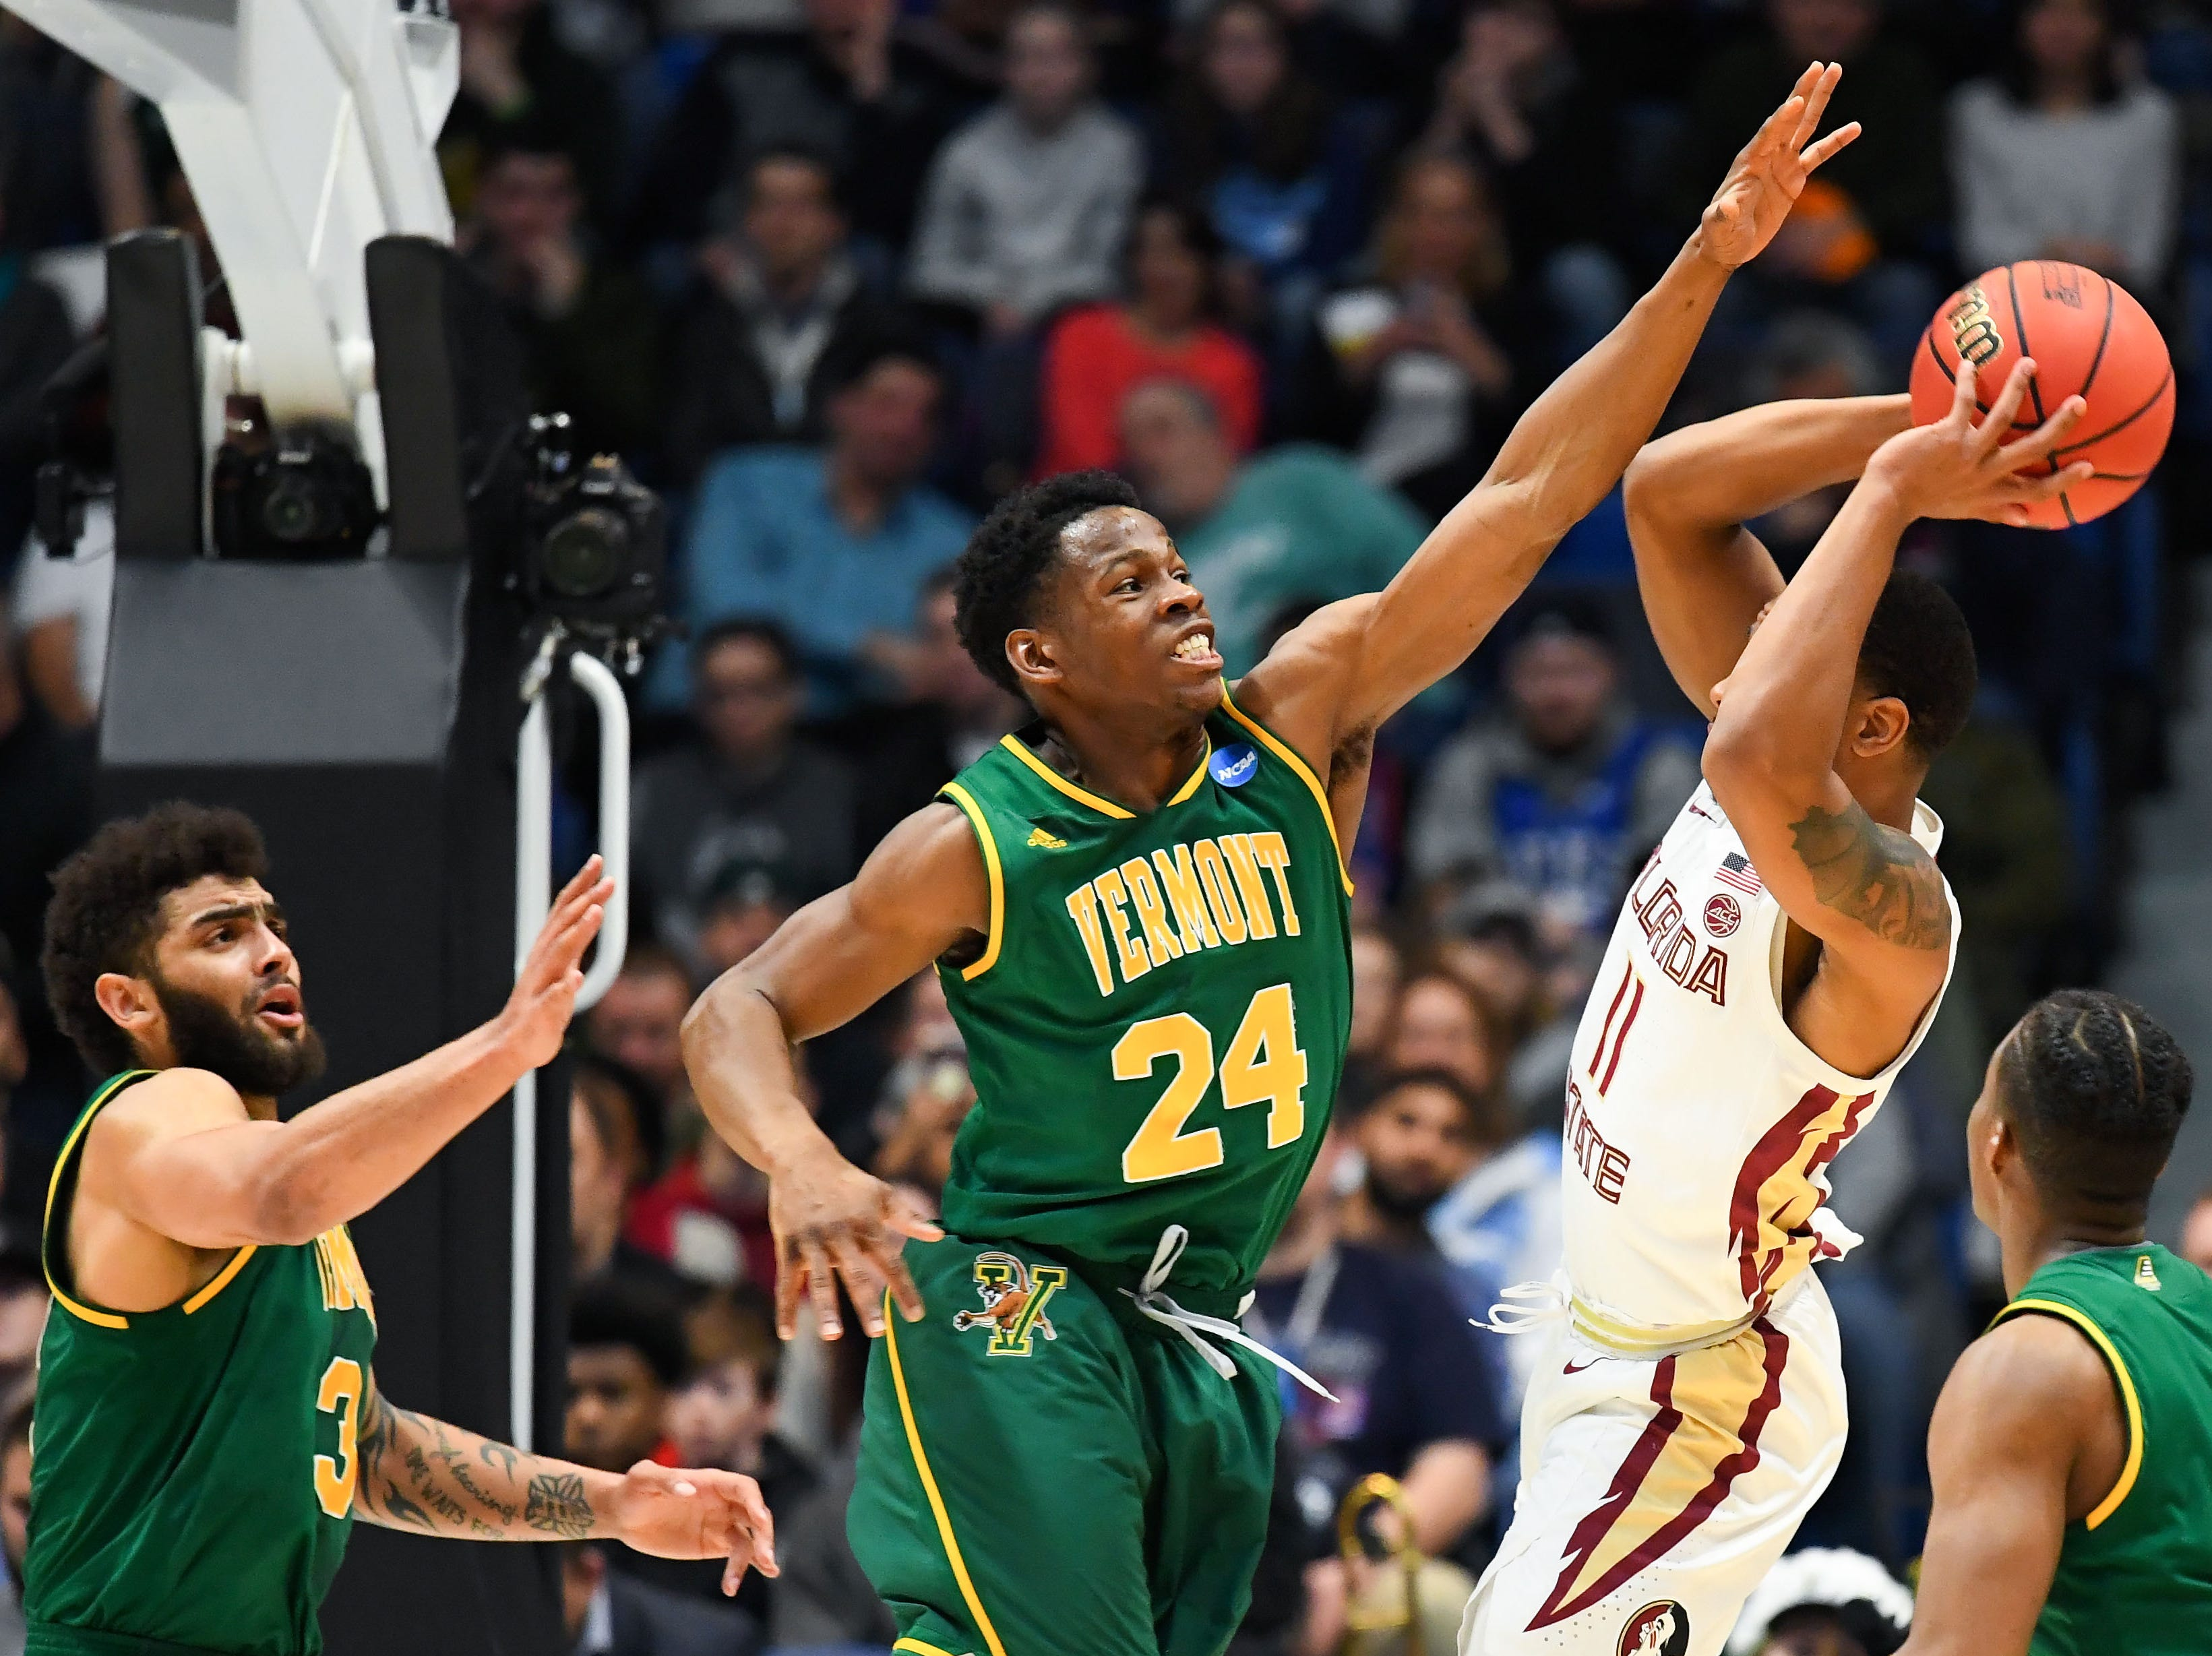 Mar 21, 2019; Hartford, CT, USA; Vermont Catamounts guard Ben Shungu (24) defends against Florida State Seminoles guard David Nichols (11) during the first half of a game in the first round of the 2019 NCAA Tournament at XL Center. Mandatory Credit: Robert Deutsch-USA TODAY Sports